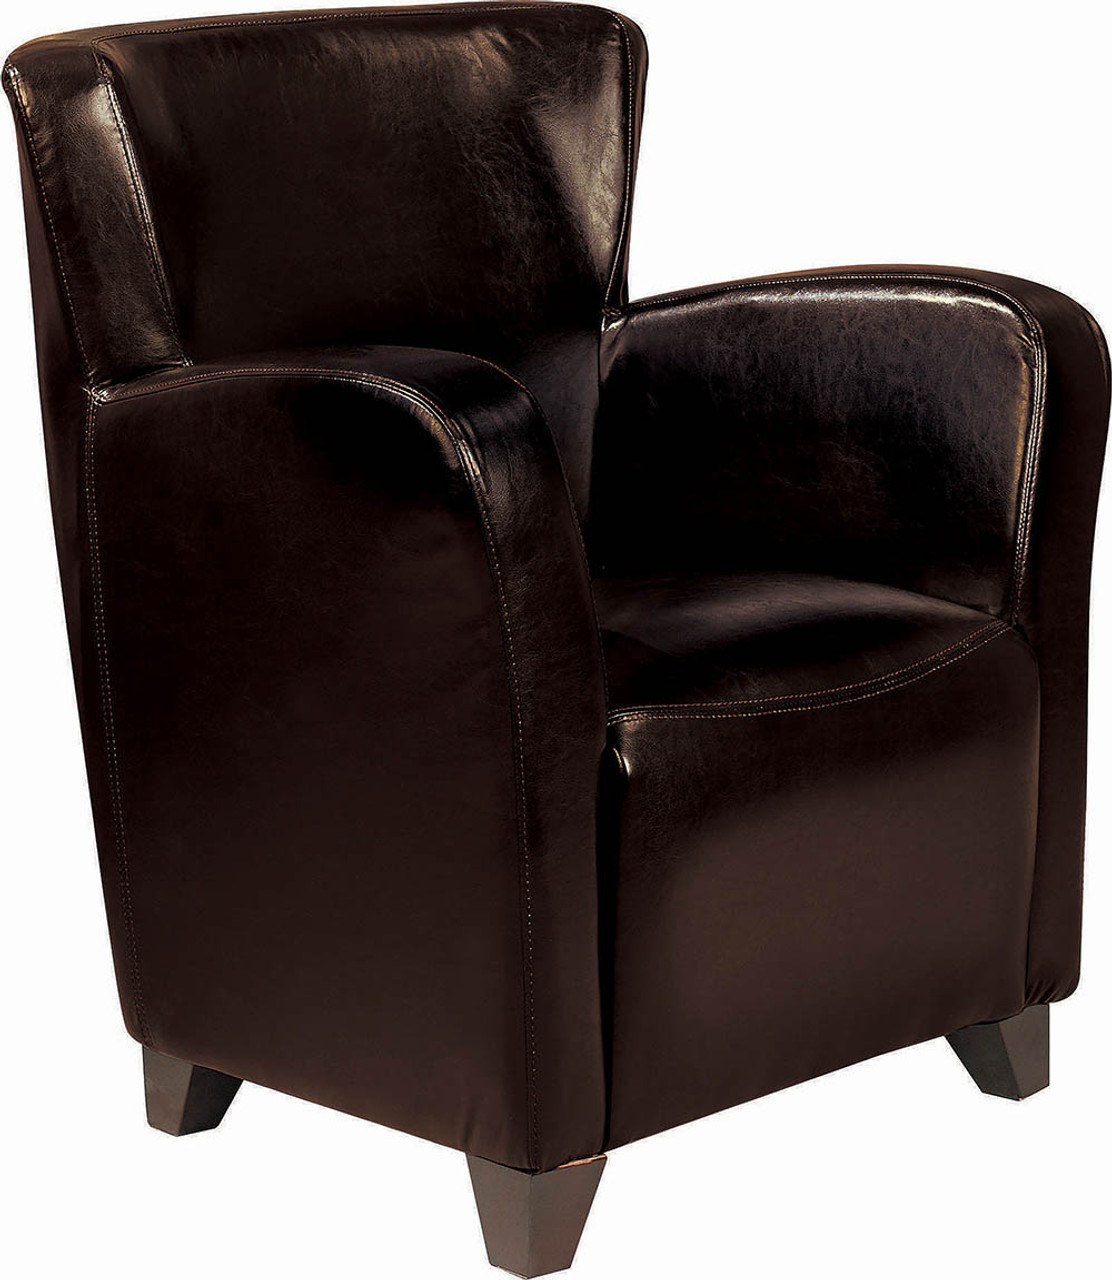 Outstanding Transitional Dark Brown Faux Leather Accent Chair Ocoug Best Dining Table And Chair Ideas Images Ocougorg